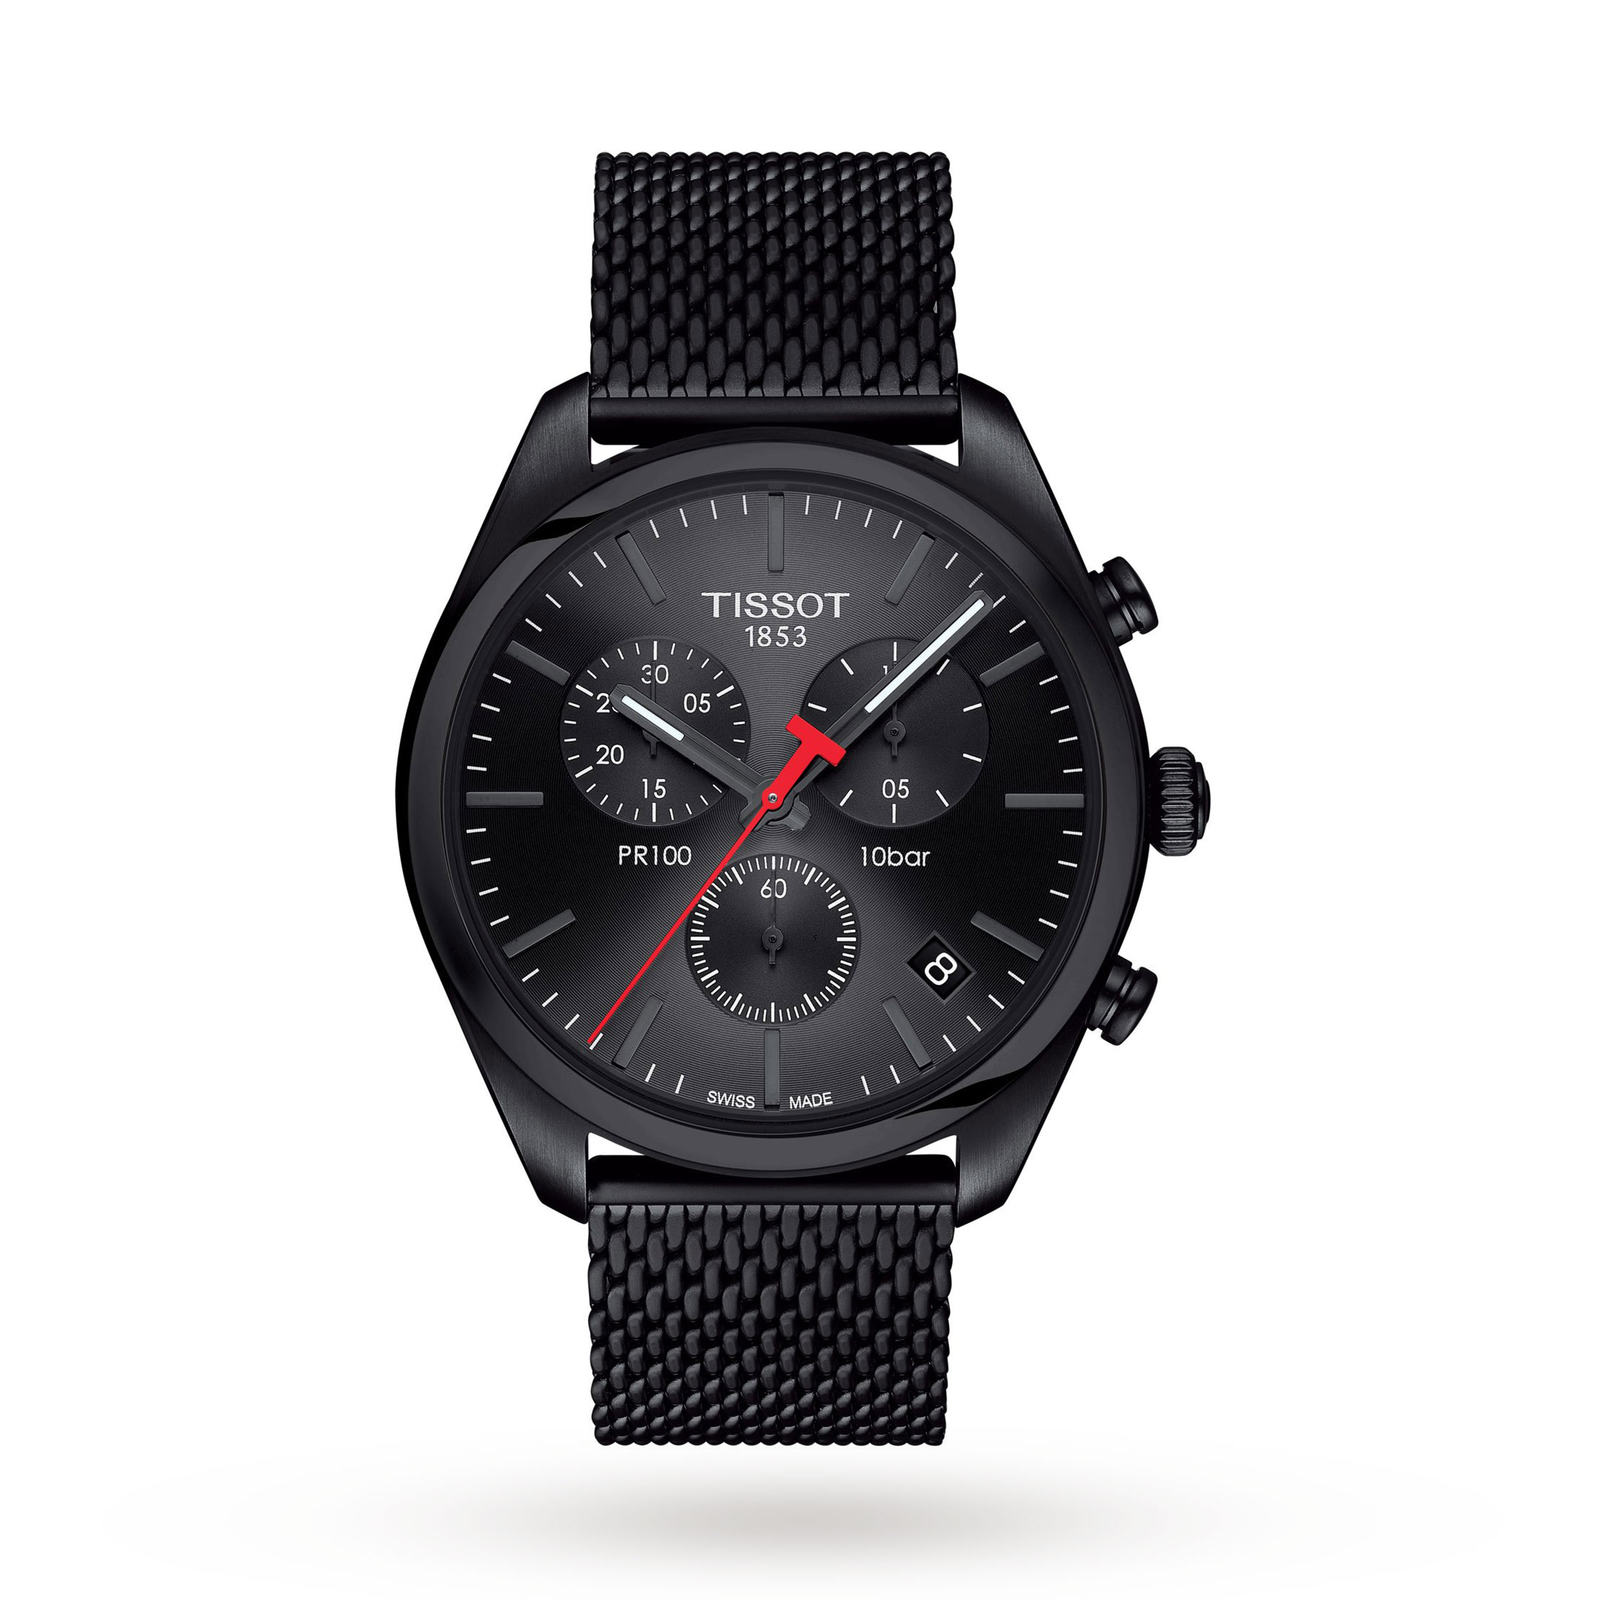 Tissot PR100 Chrono Watch